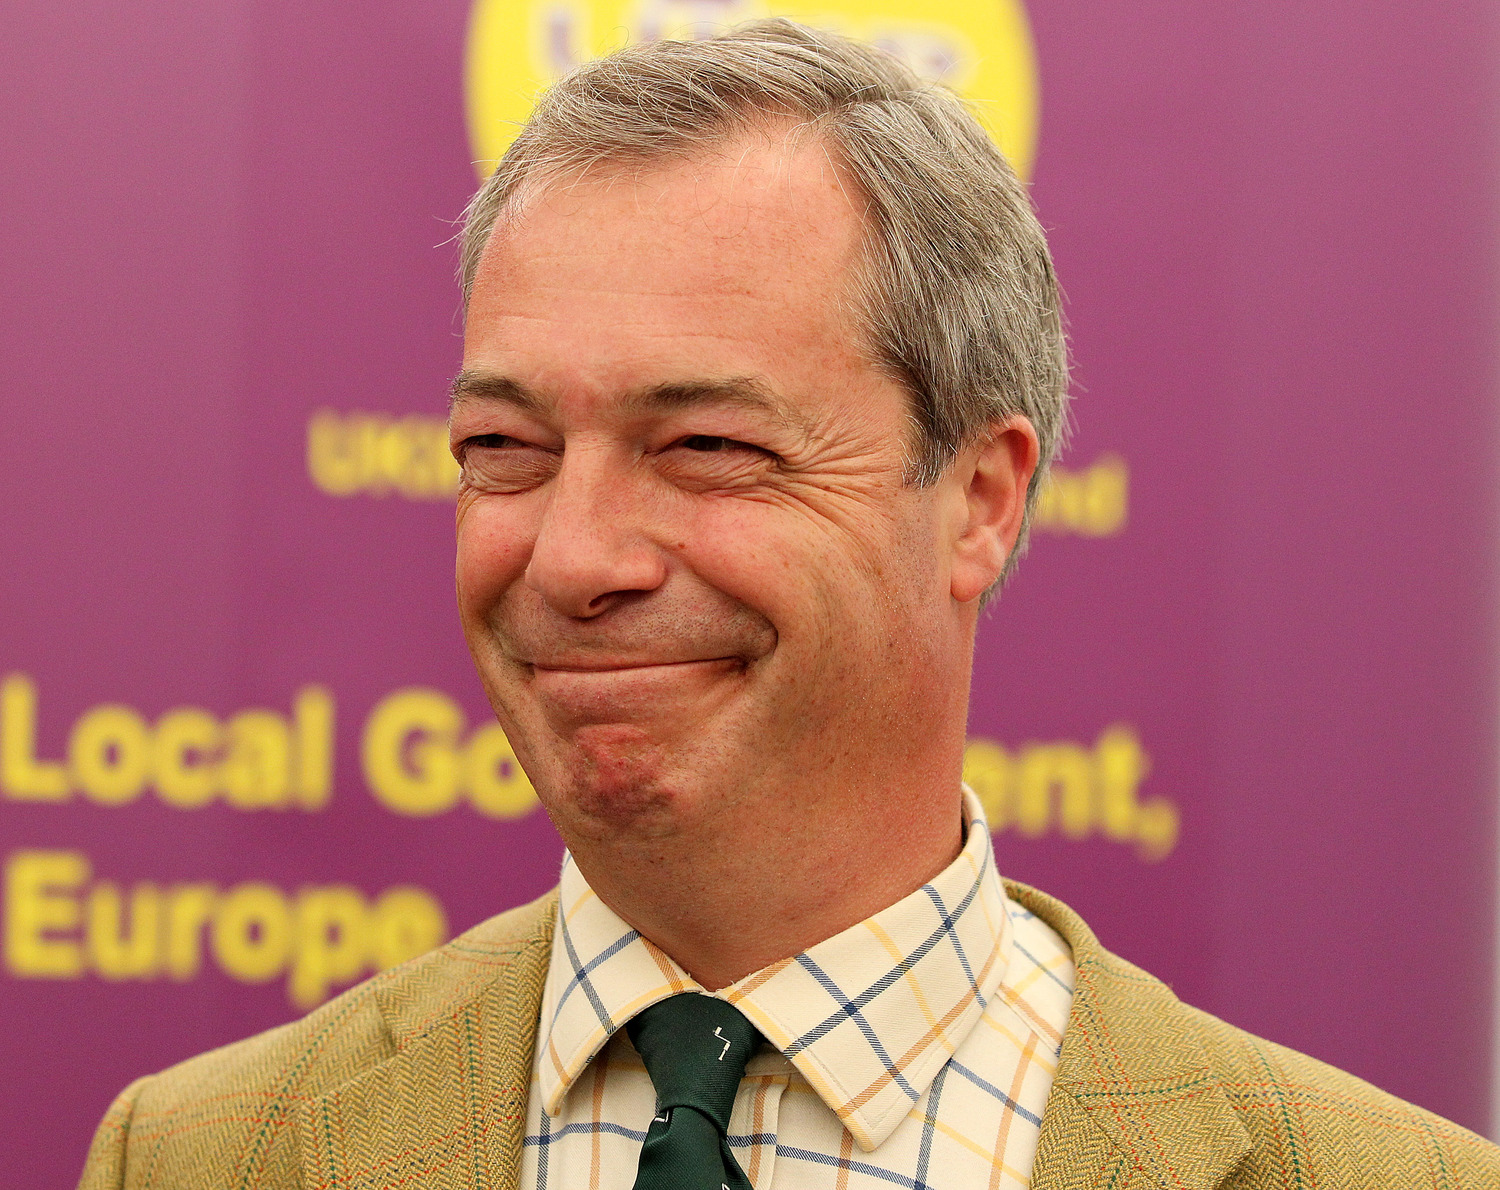 UKIP leader Nigel Farage, who has been the most controversial figure in the push to exit the EU